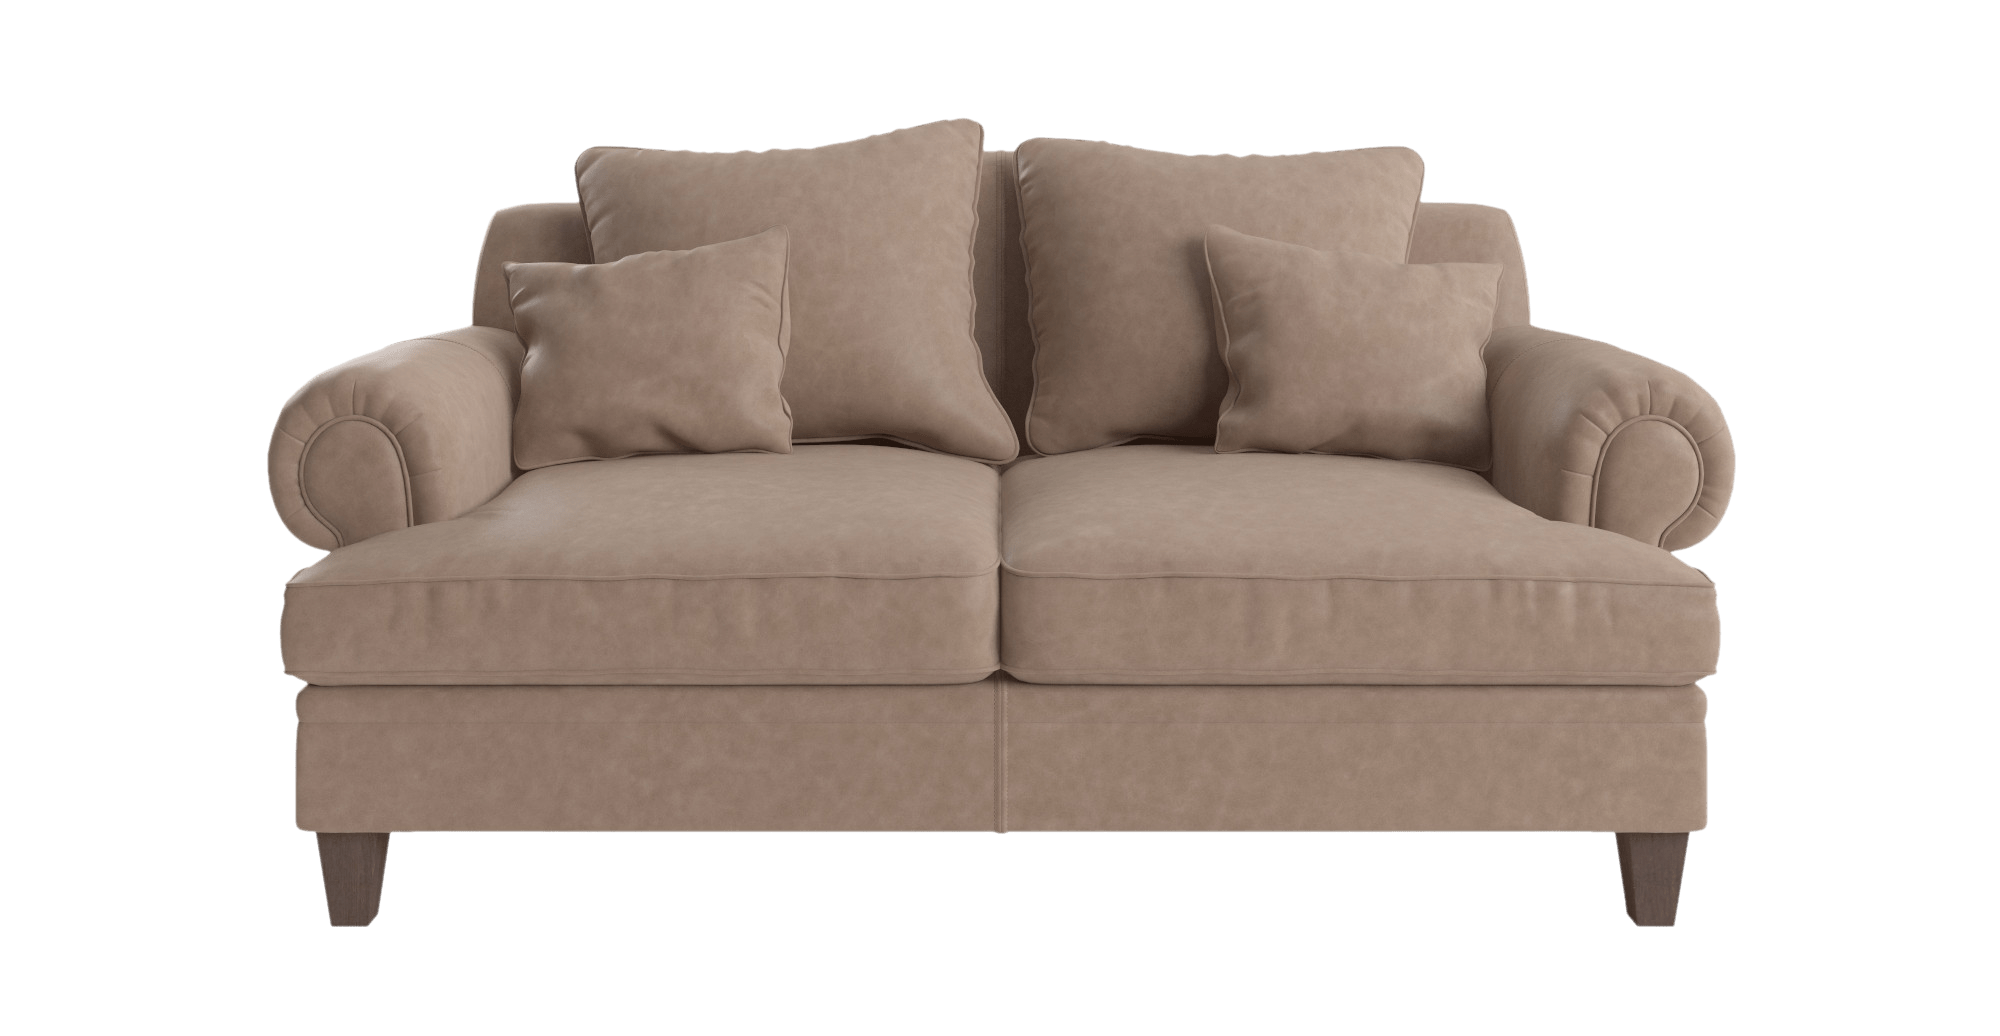 2 Seater Sofas Couches & Lounges Designer Small Sofa Range